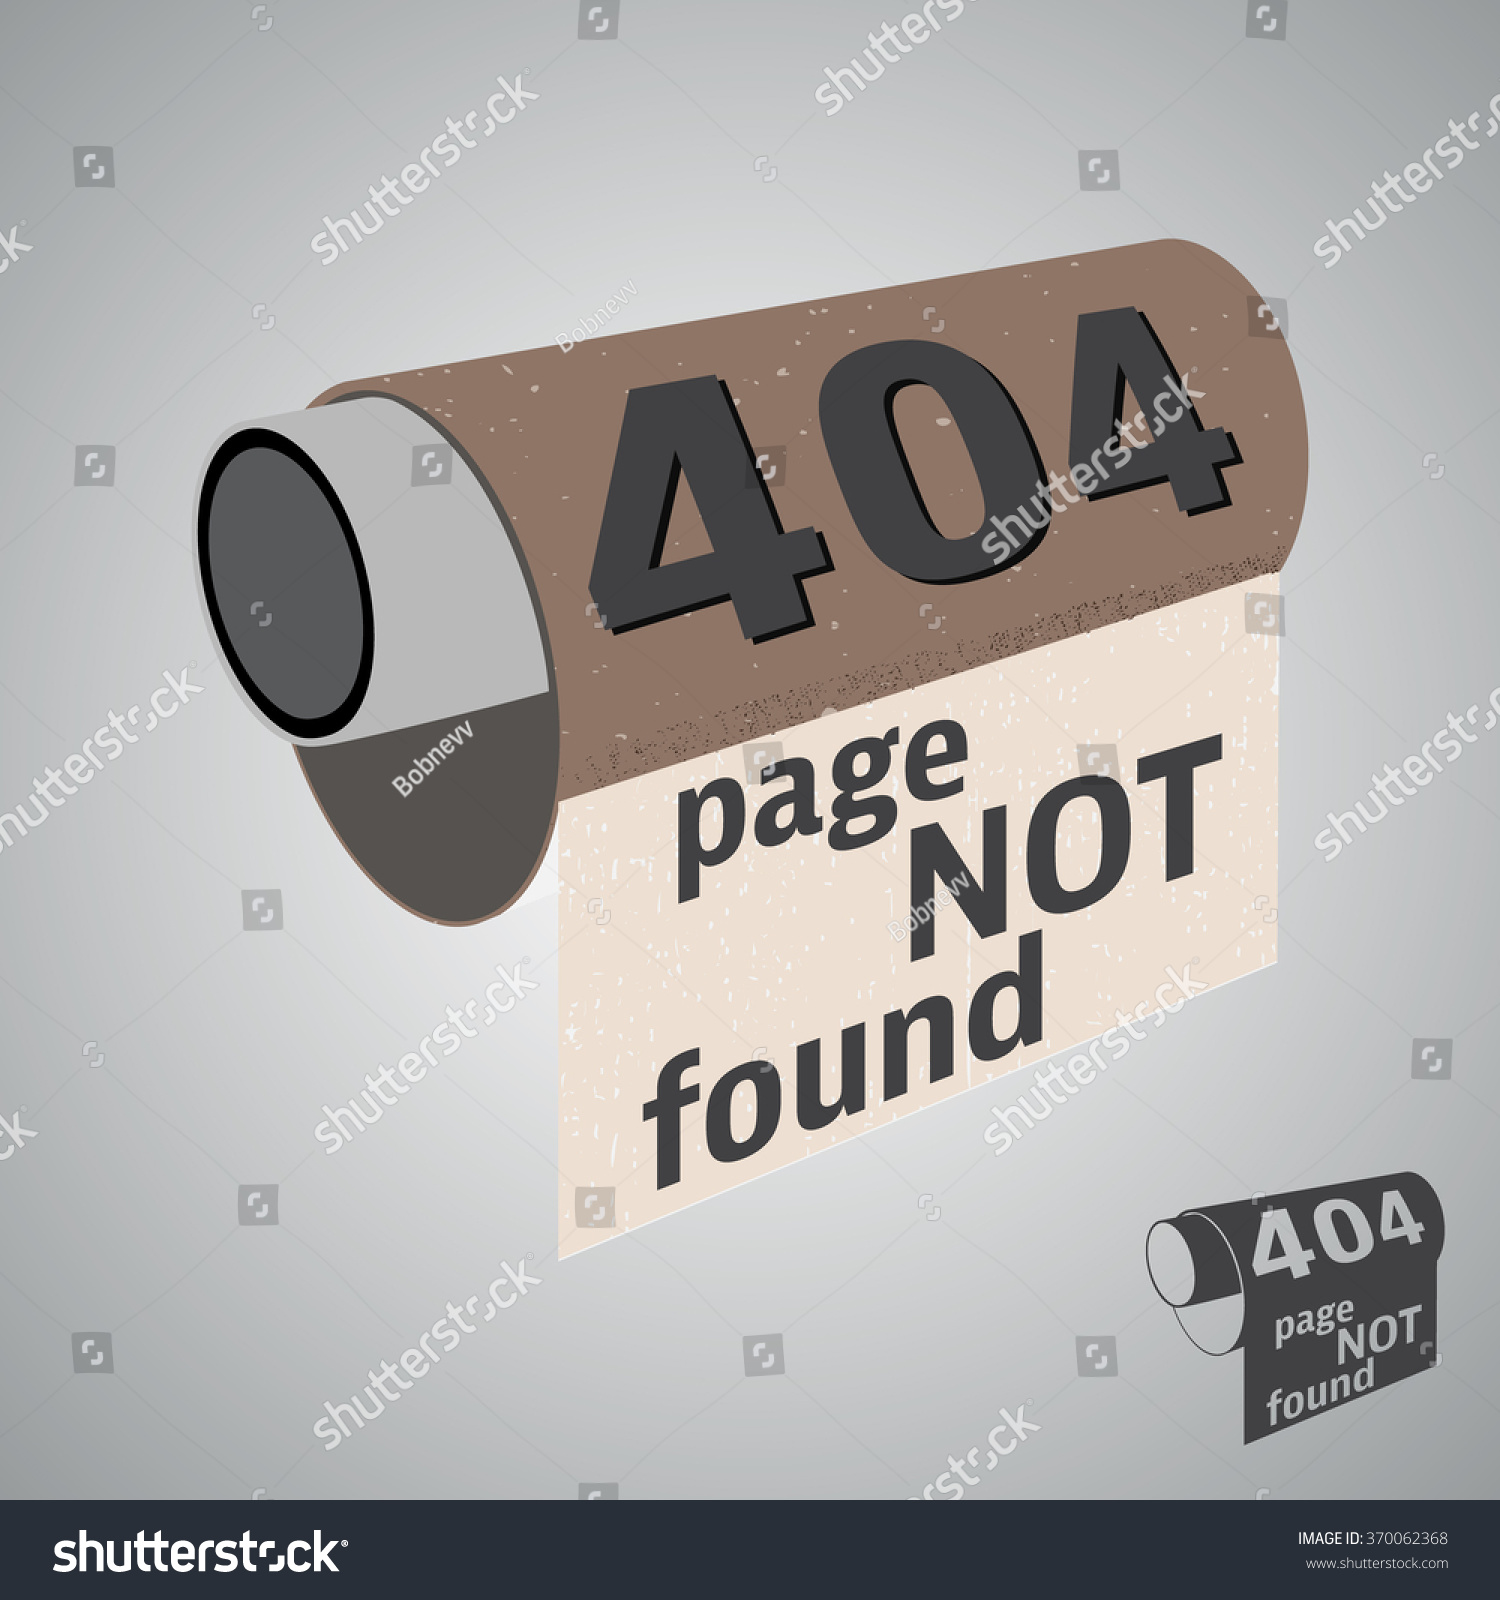 Background image 404 not found - Error 404 Page Not Found Background Toilet Paper With Error Message Vector Illustration